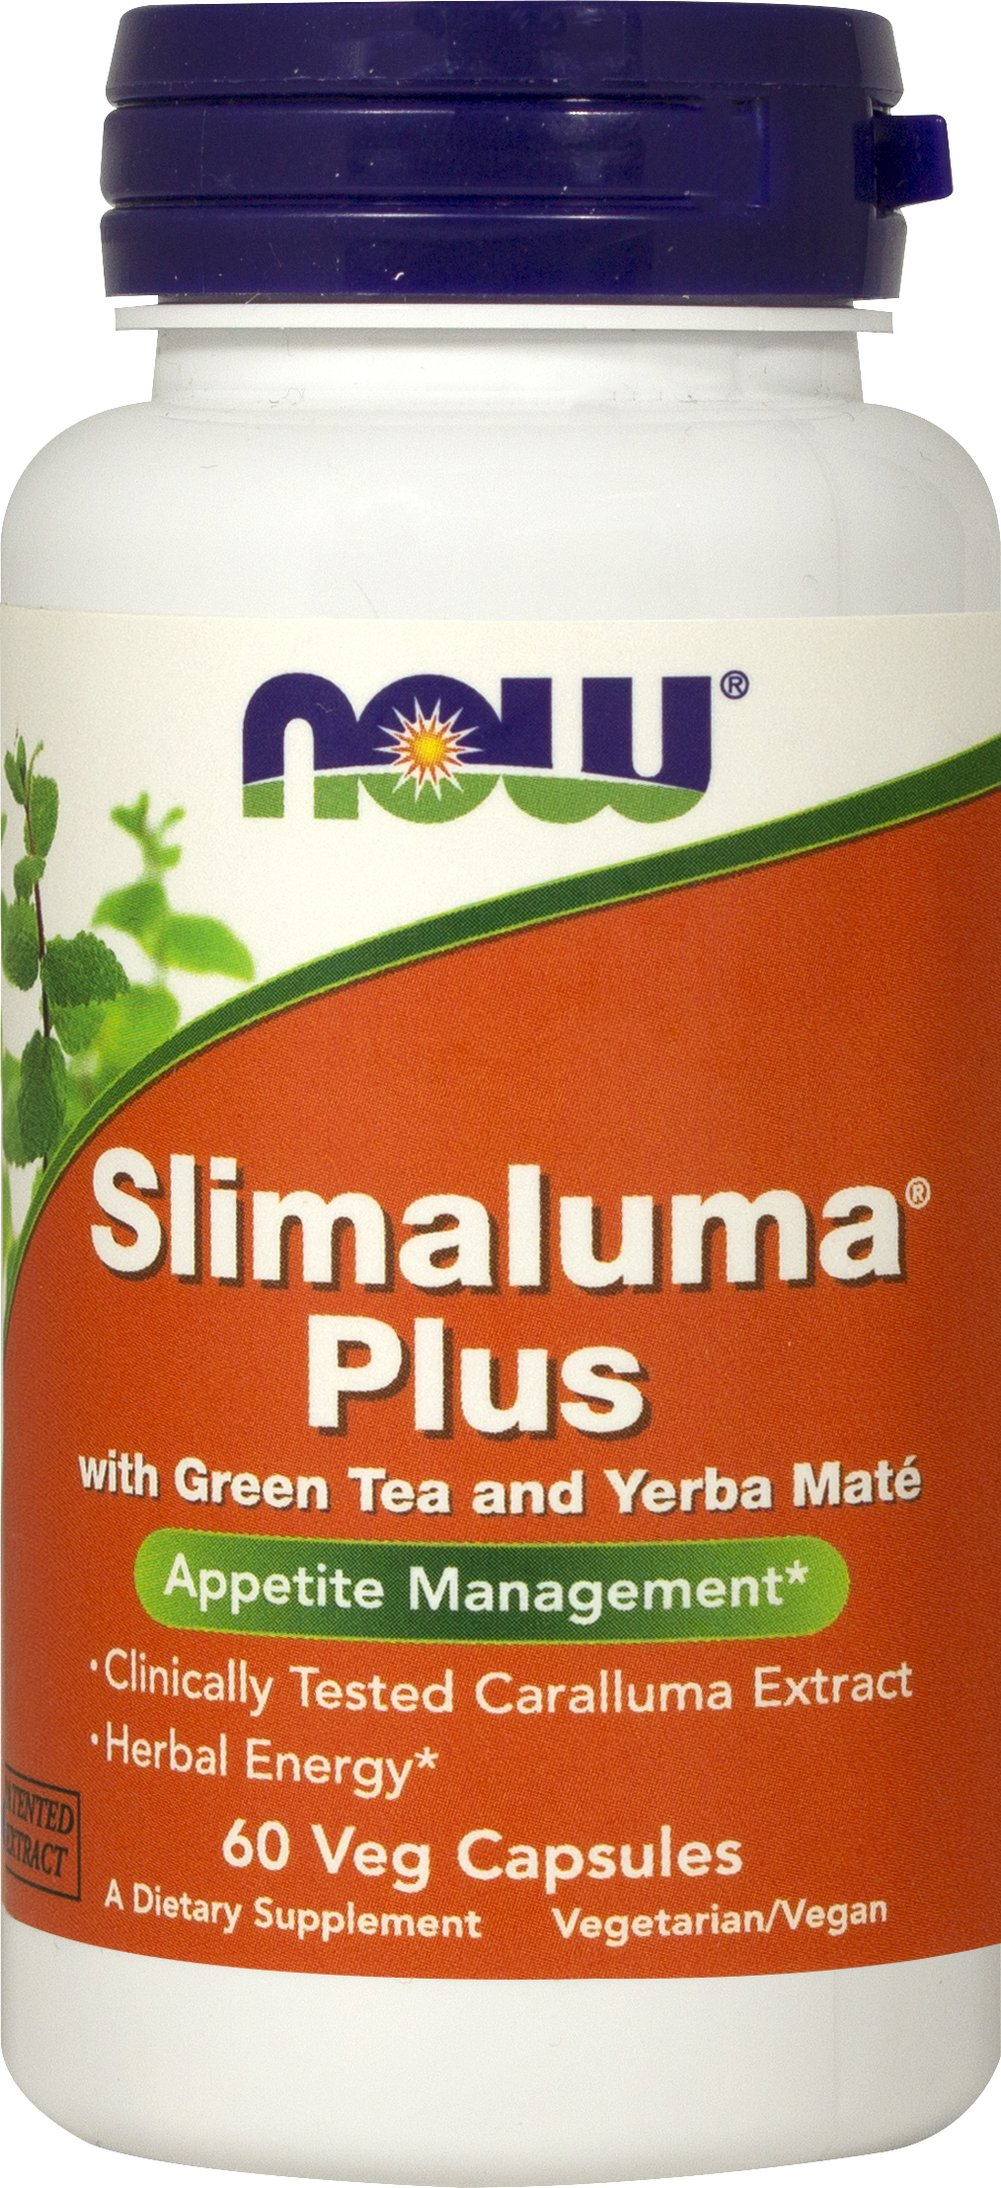 Slimaluma Plus <p><strong>From the Manufacturer's label:</strong></p><p>With Green Tea and Yerba Maté</p><p>NOW® Slimaluma® Plus contains a patented extract of Caralluma Fimbriata, and edible succulent native to India.</p><p>NOW® Slimaluma® Plus also features the synergistic ingredients Green Tea Extract and Yerba Mate for their antioxidant and energizing effects.**</p><p>Manufactured by Now Foods</